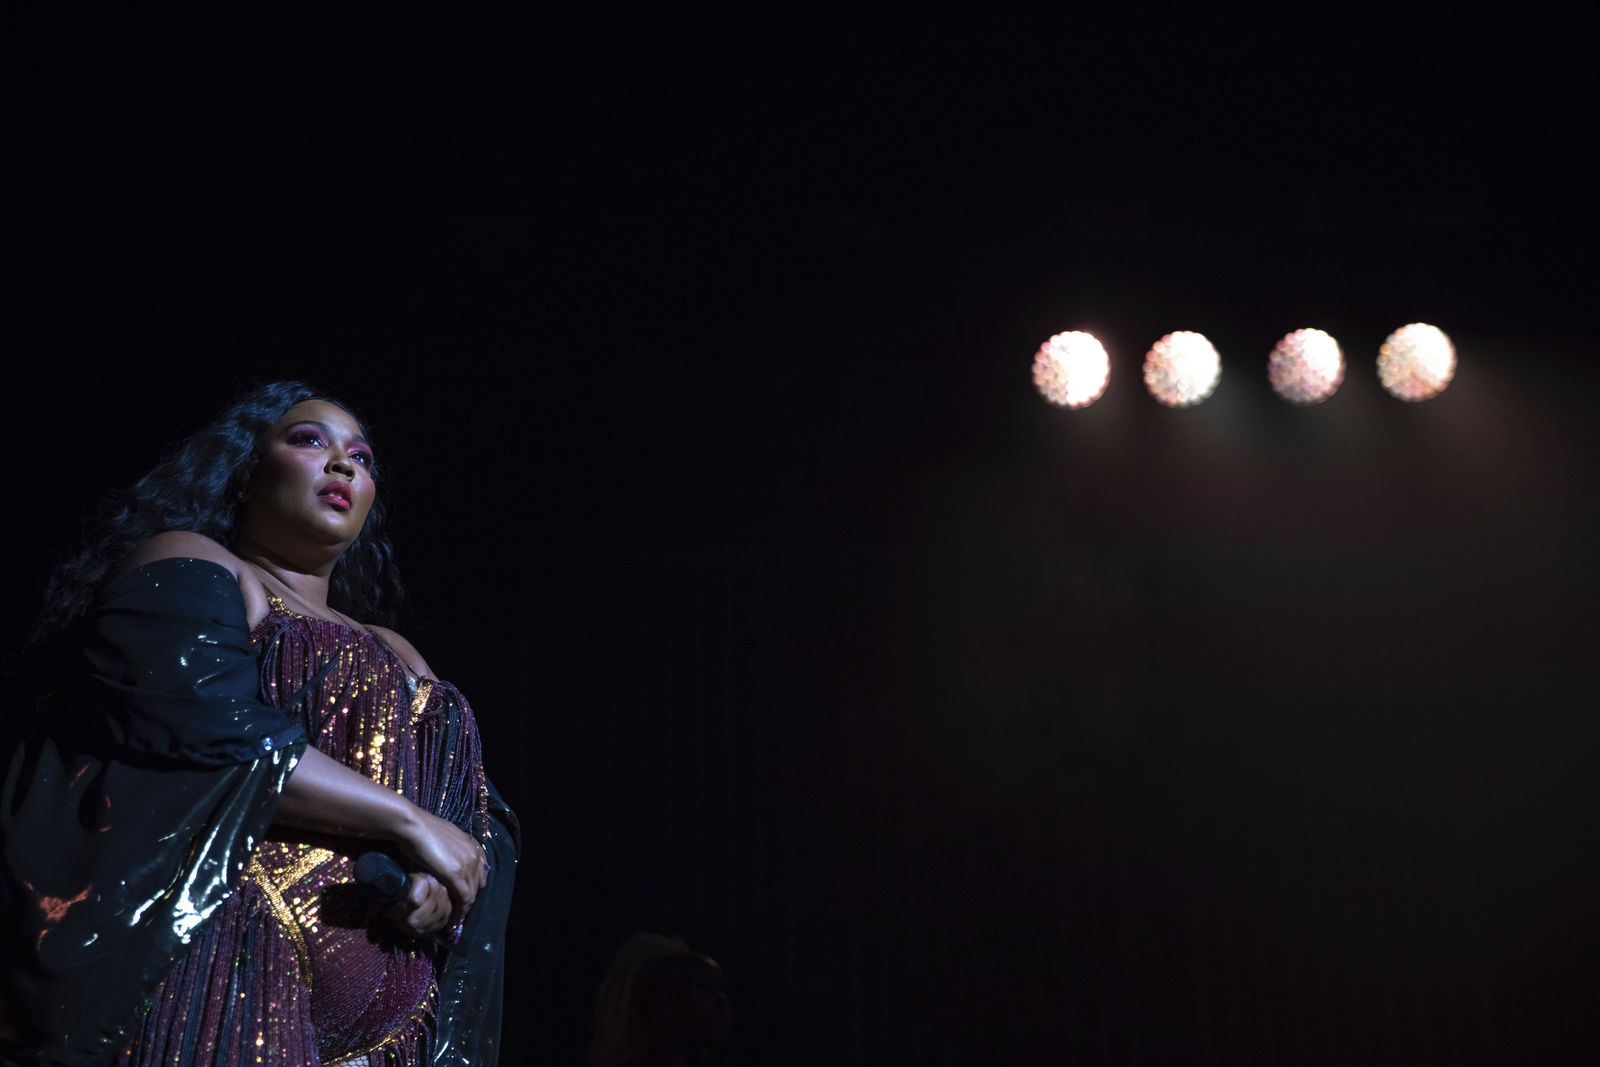 "FILE - This Sept. 25, 2019 file photo shows singer/songwriter Lizzo on stage at The Anthem in Washington.  There's a debate about the truth behind Lizzo's ""Truth Hurts."" The songwriting brothers Justin and Jeremiah Raisen, who worked on Lizzo's other song ""Healthy,"" claim say they deserve writing credit on ""Truth Hurts"" since the song borrows a line from a tune they co-wrote. (Photo by Brent N. Clarke/Invision/AP, File)"